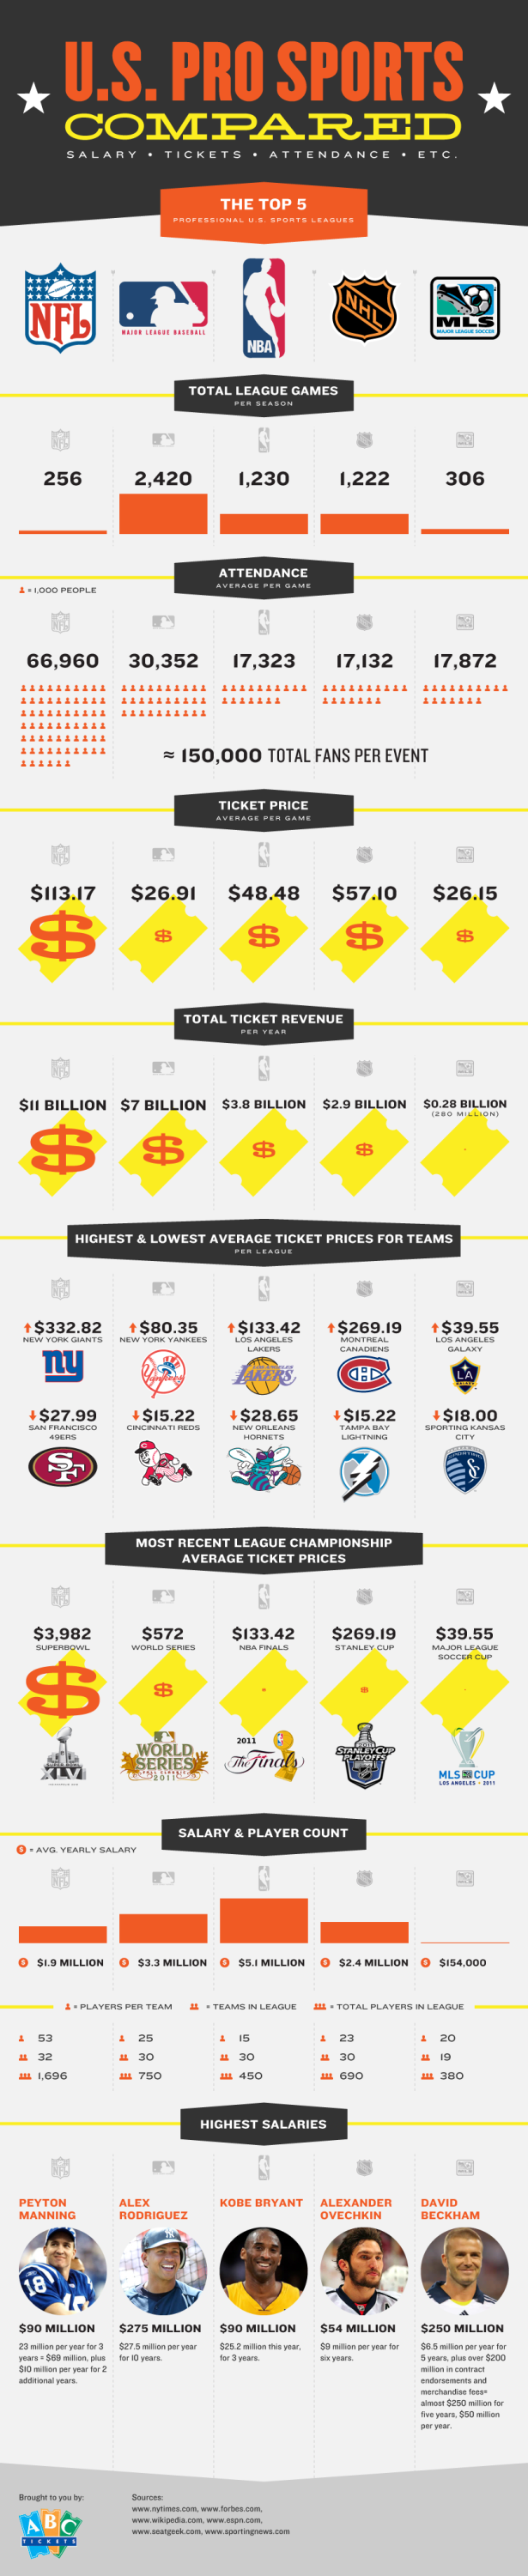 US Pro Sports - How MLS Stacks Up